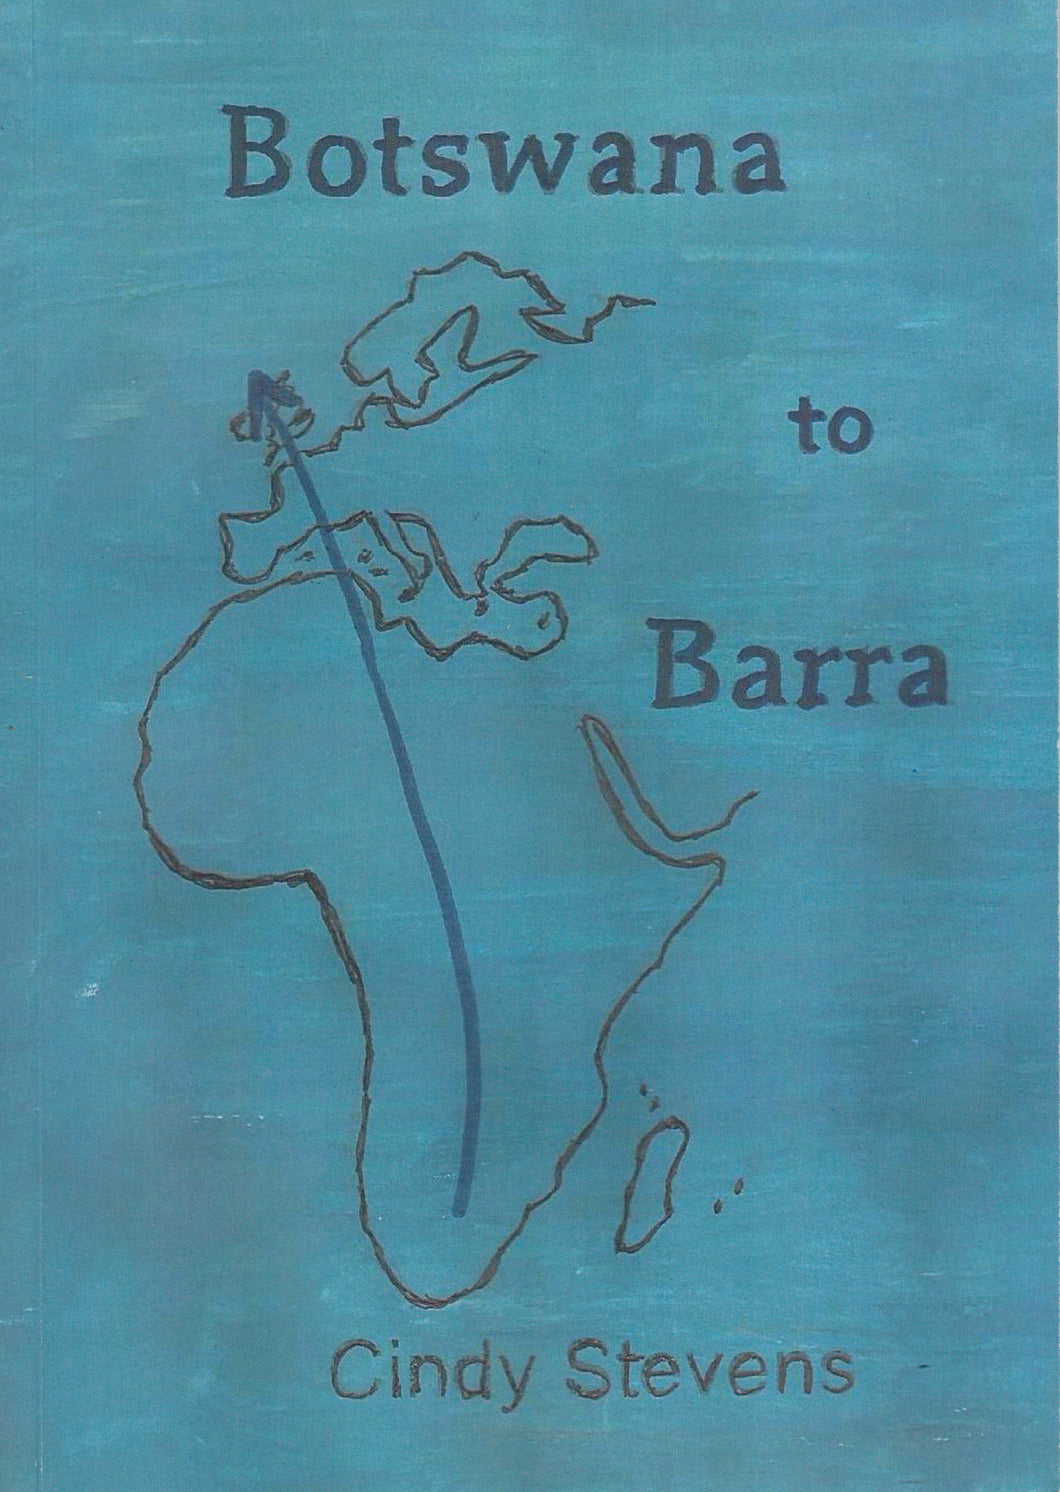 Botswana to Barra (Cindy Stevens)